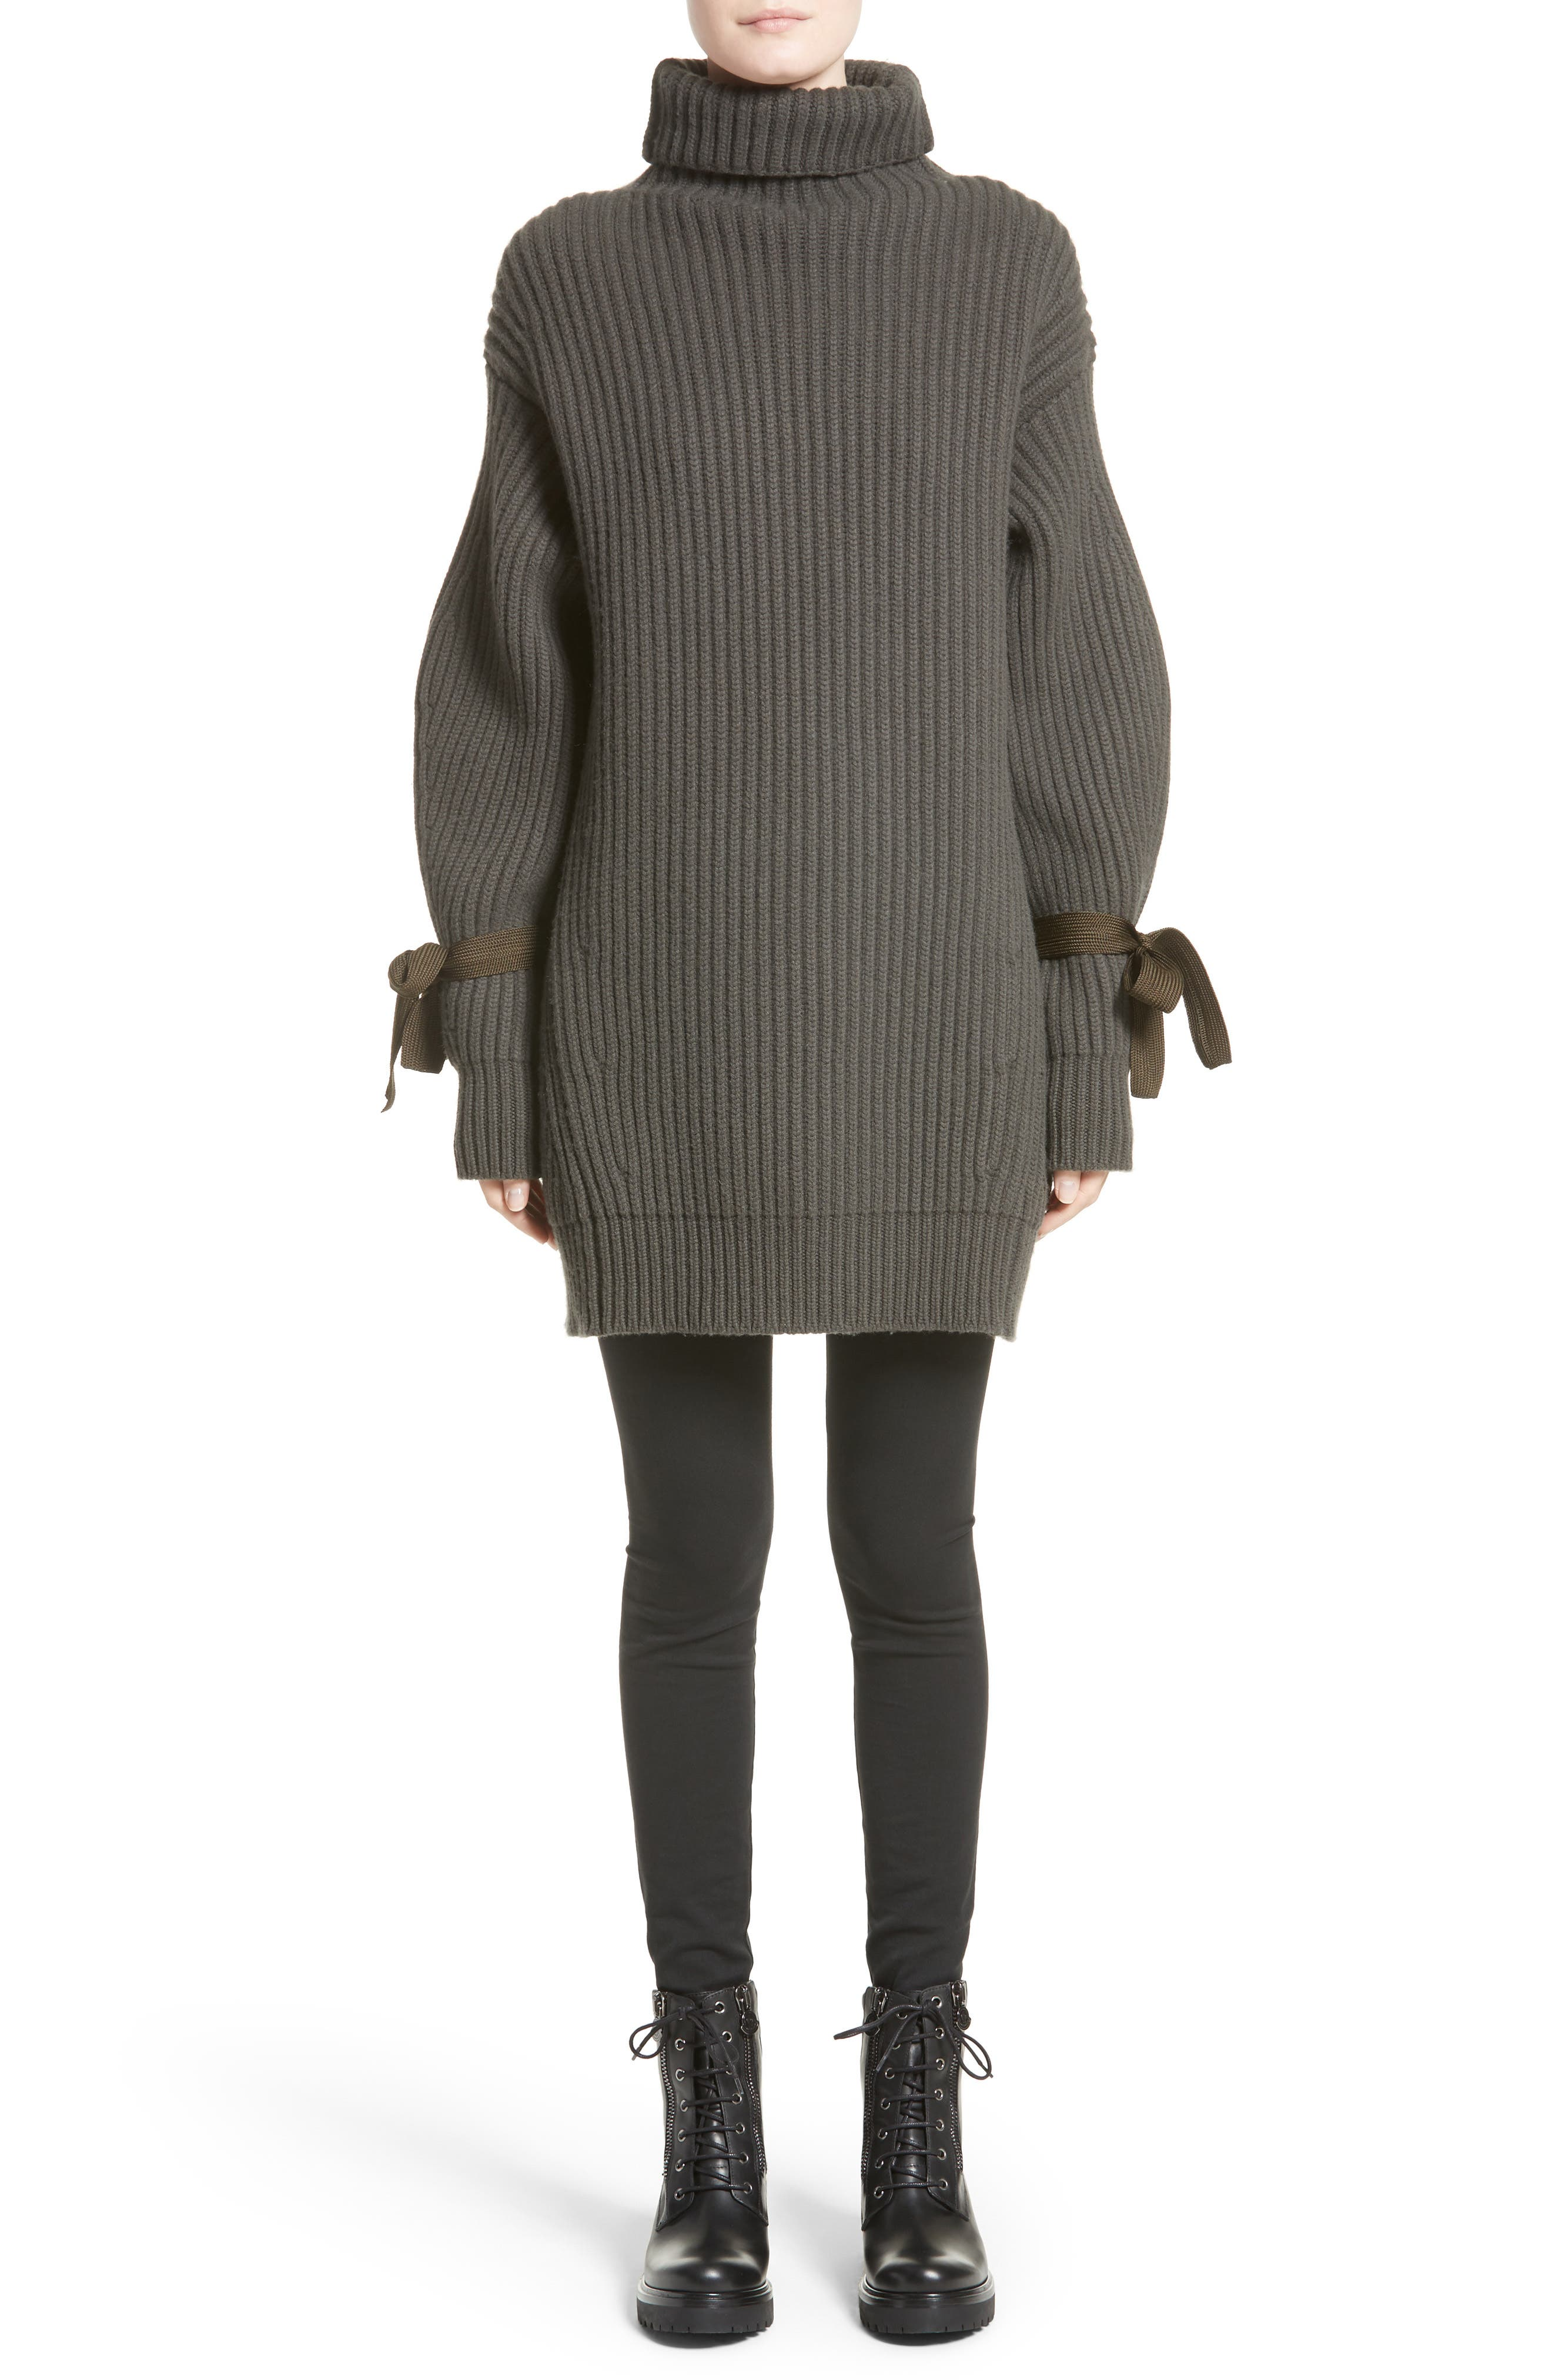 Alternate Image 1 Selected - Moncler Ciclista Wool & Cashmere Sweater